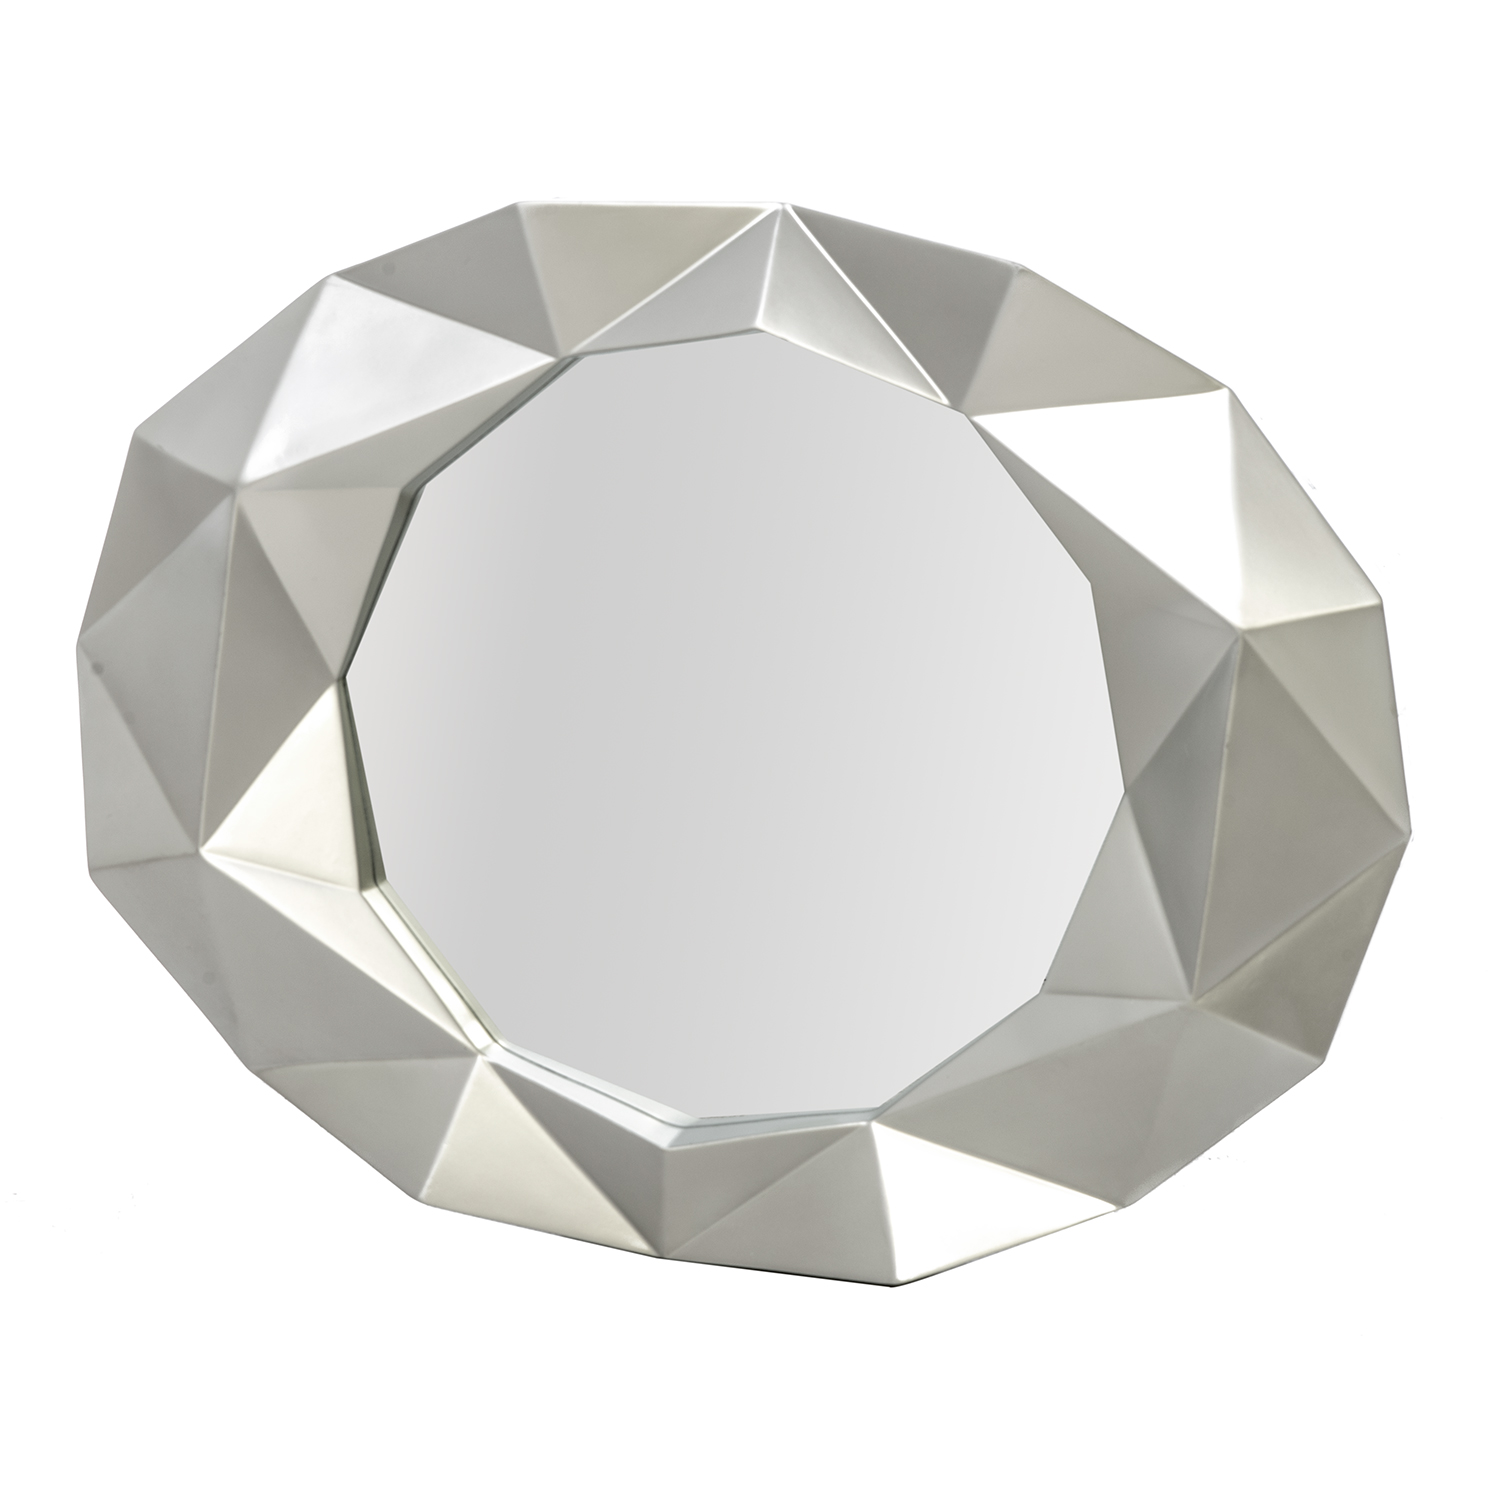 Image of Casa Champagne Bevel Mirror, Gold